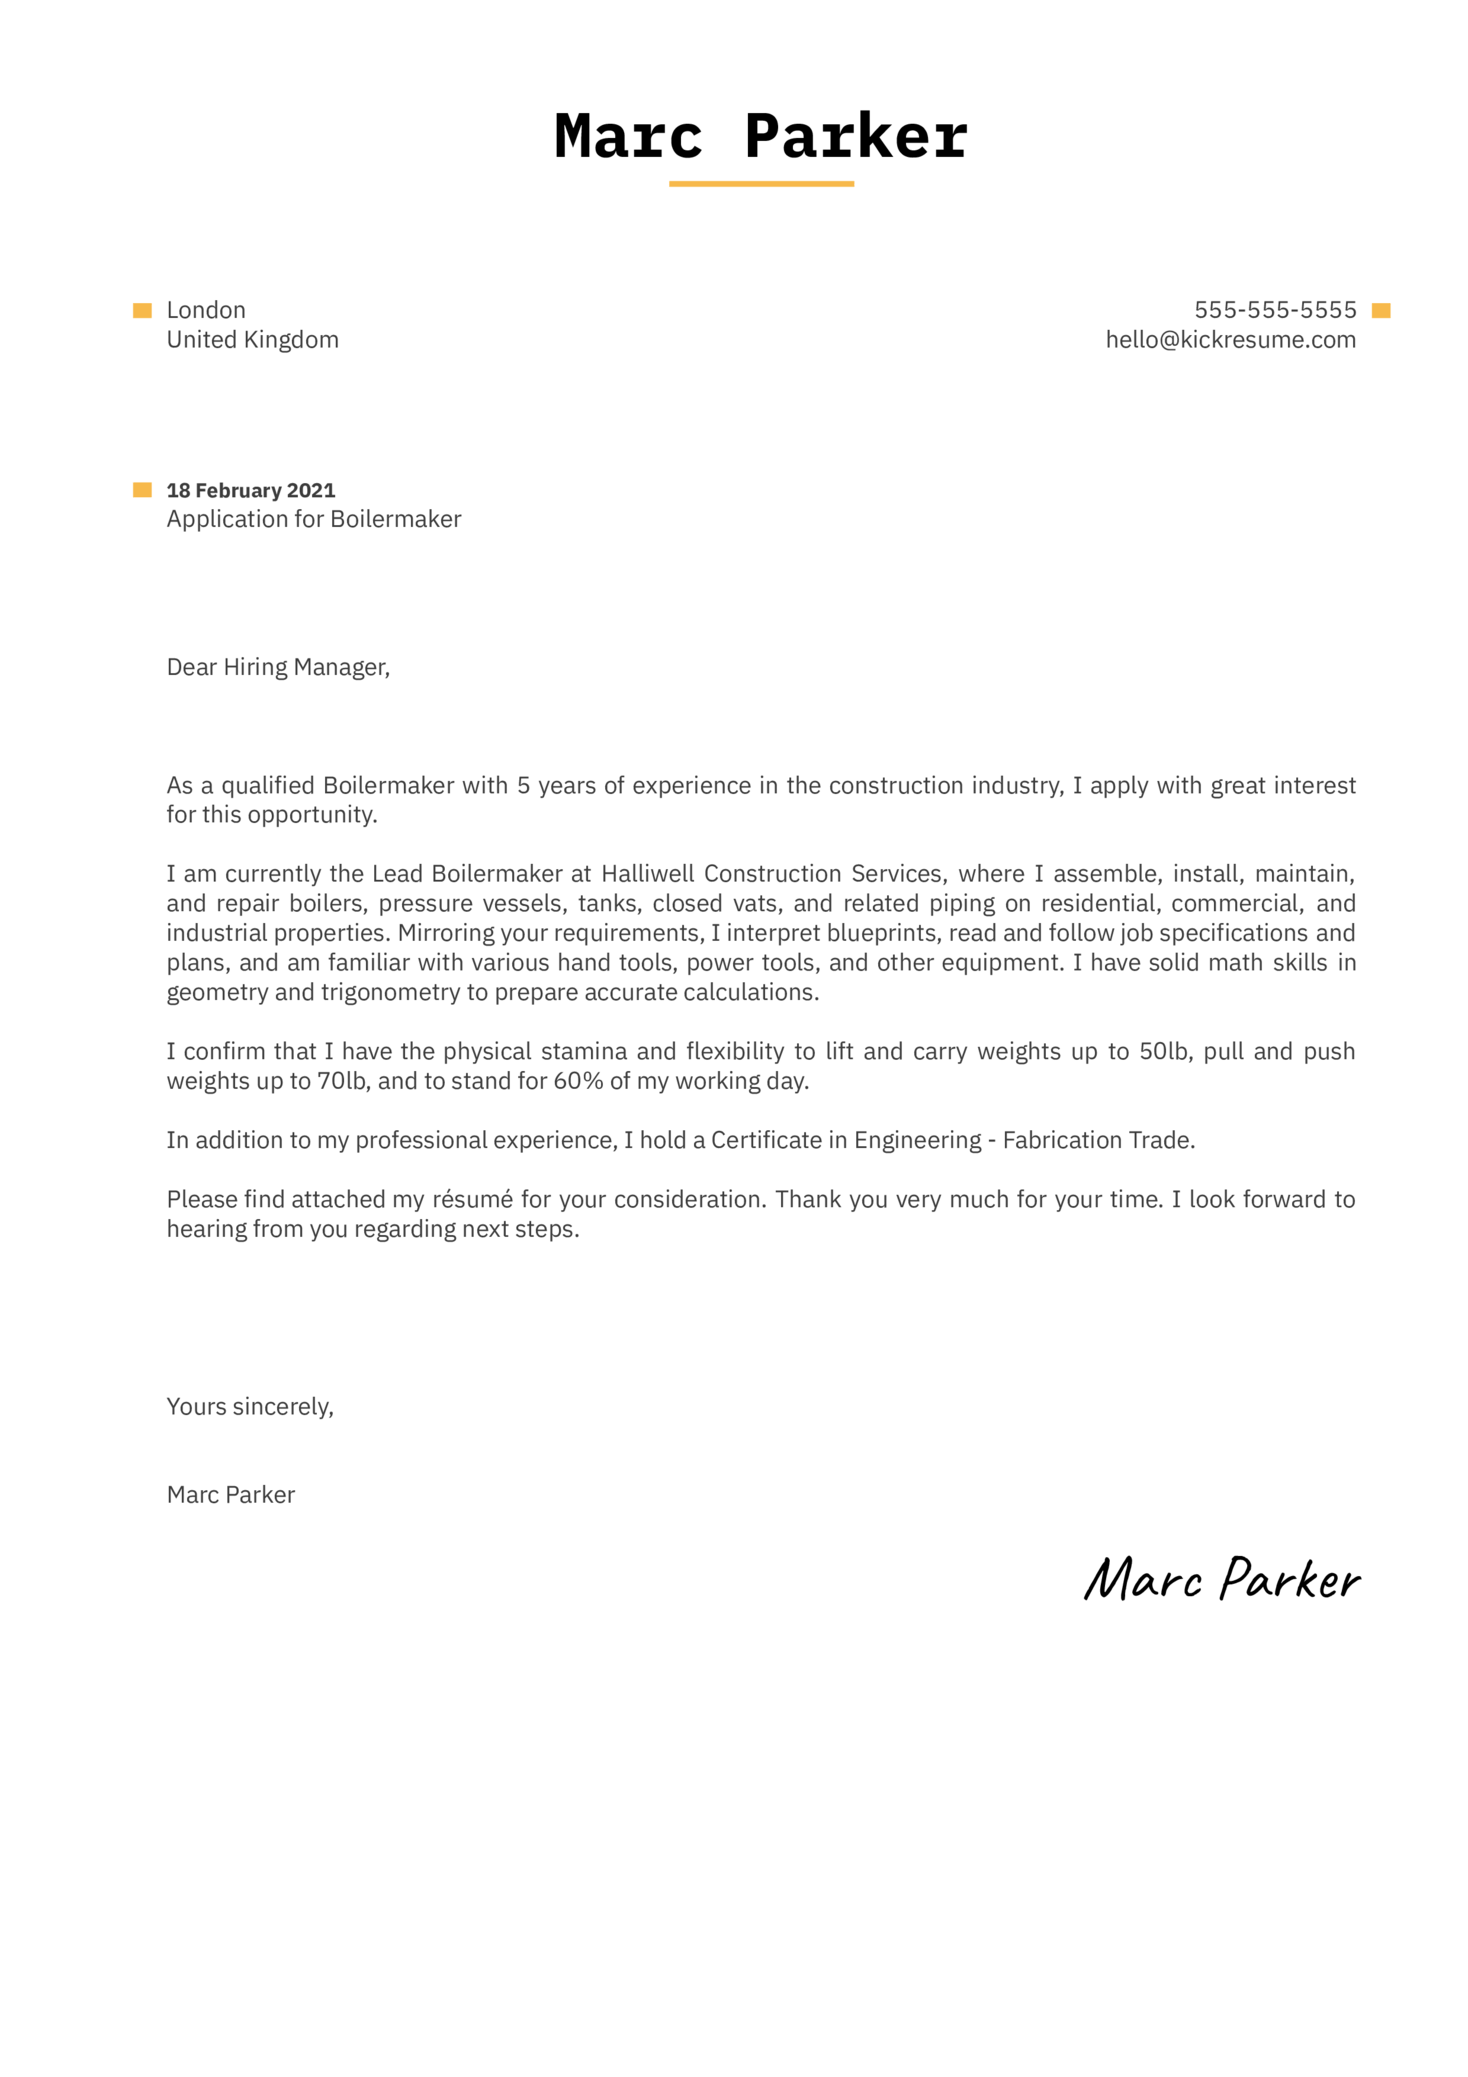 Boilermaker Cover Letter Sample